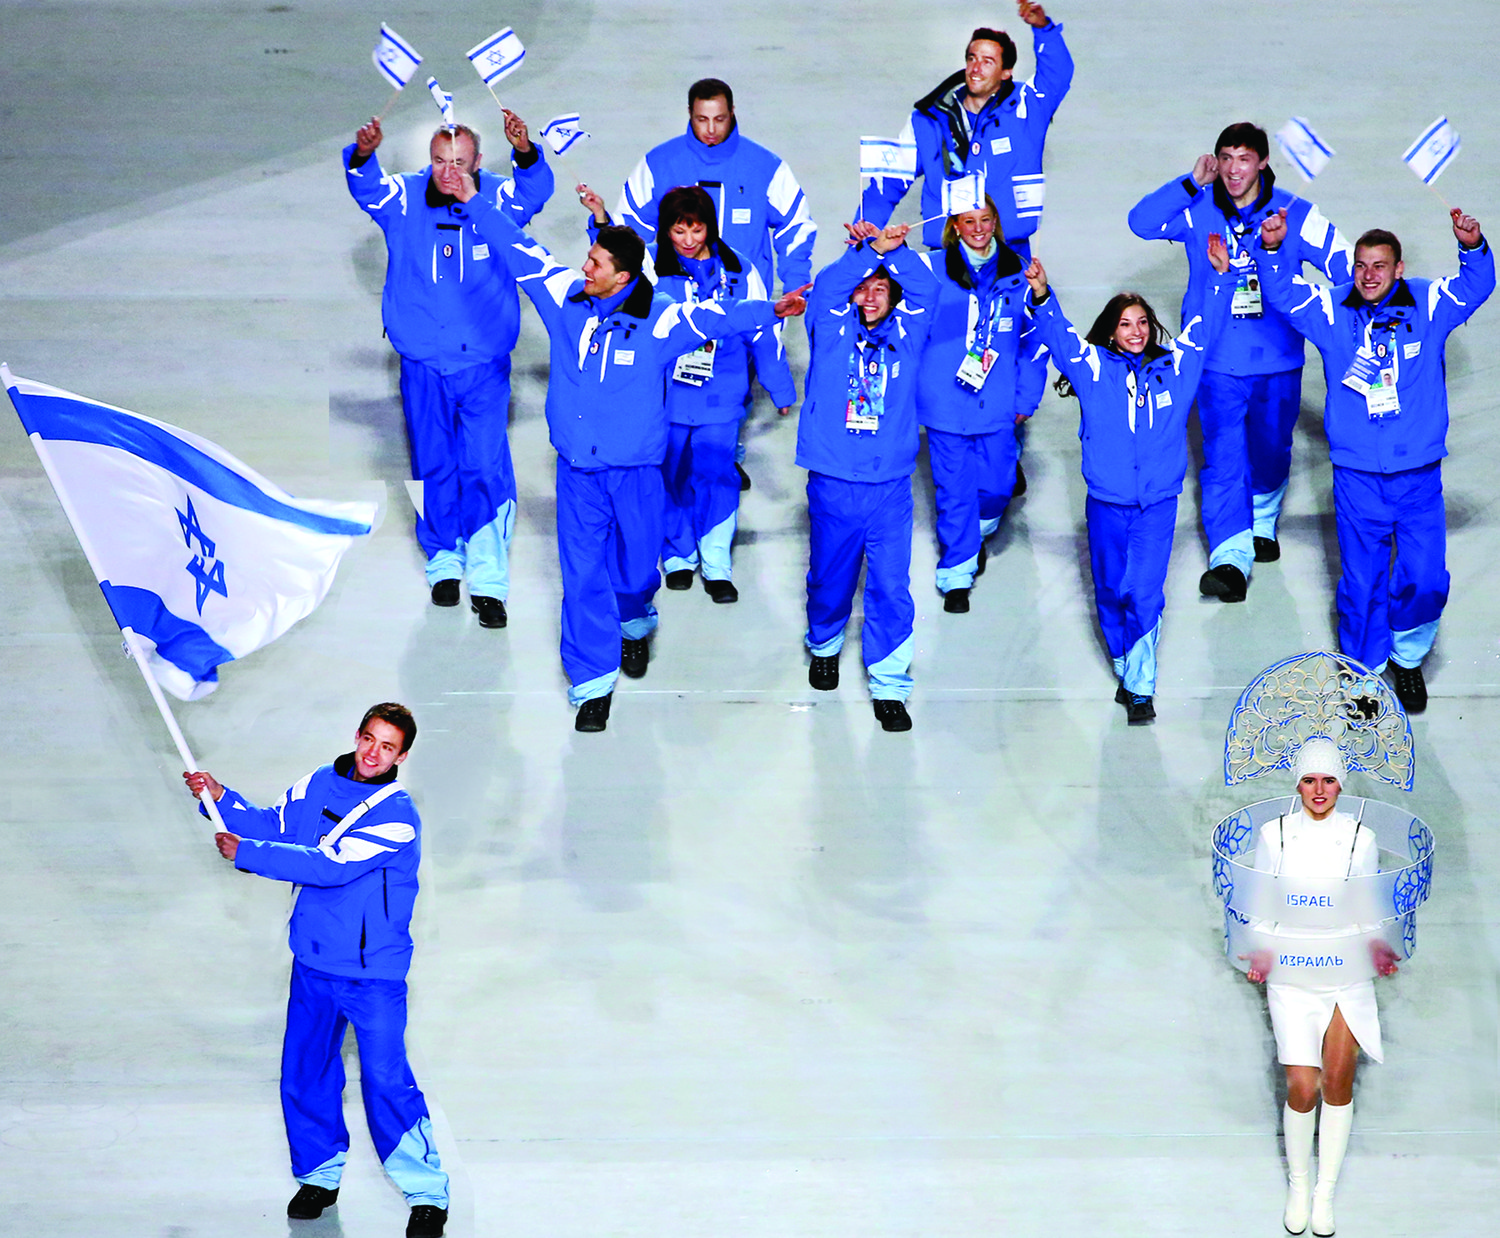 Short track speed skater Vladislav Bykanov, lower left, leading the Israeli Olympic team at the opening ceremony of the Winter Olympics in Sochi, Russia, Feb. 7, 2014.